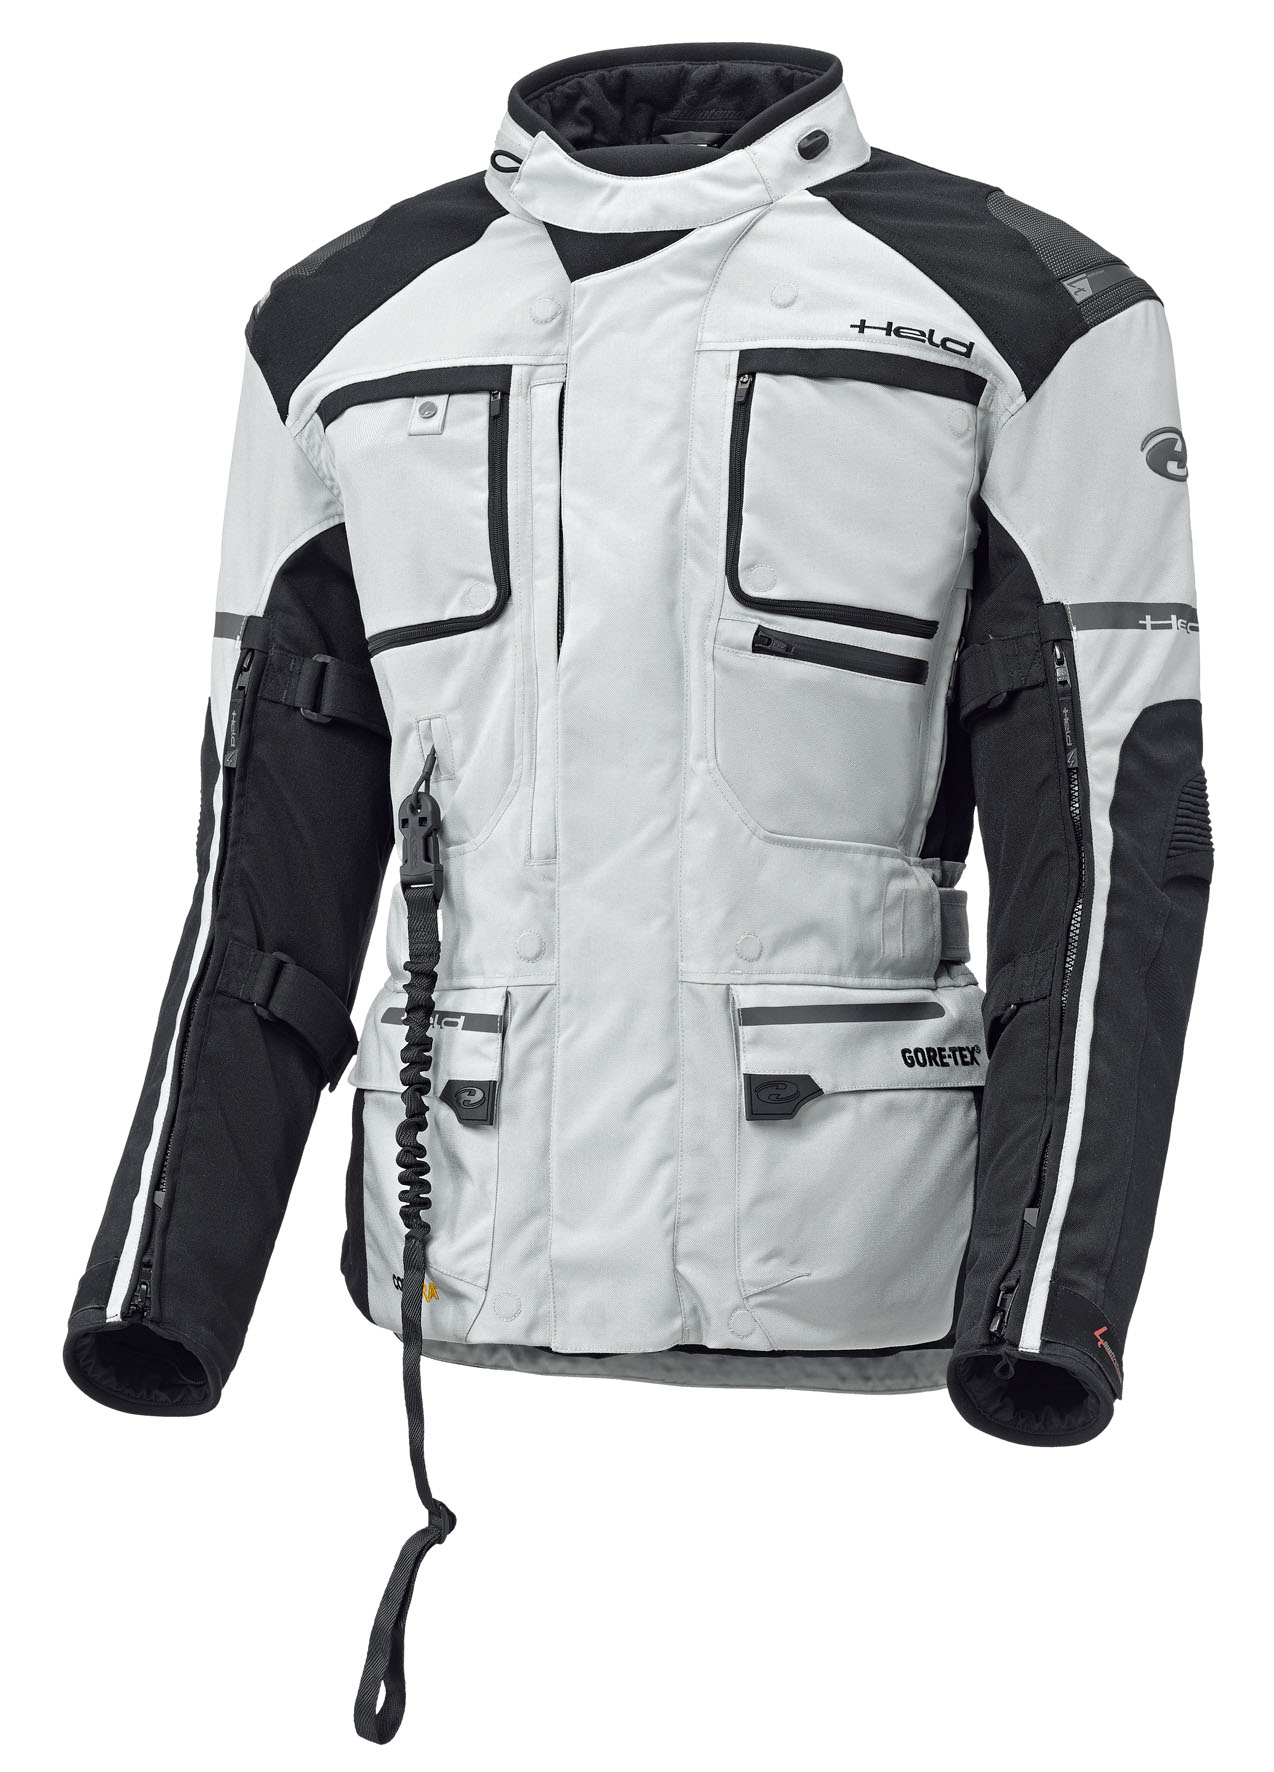 HELD - Giacca CARESE APS (Air Protect System)(6651)(Fronte)-1